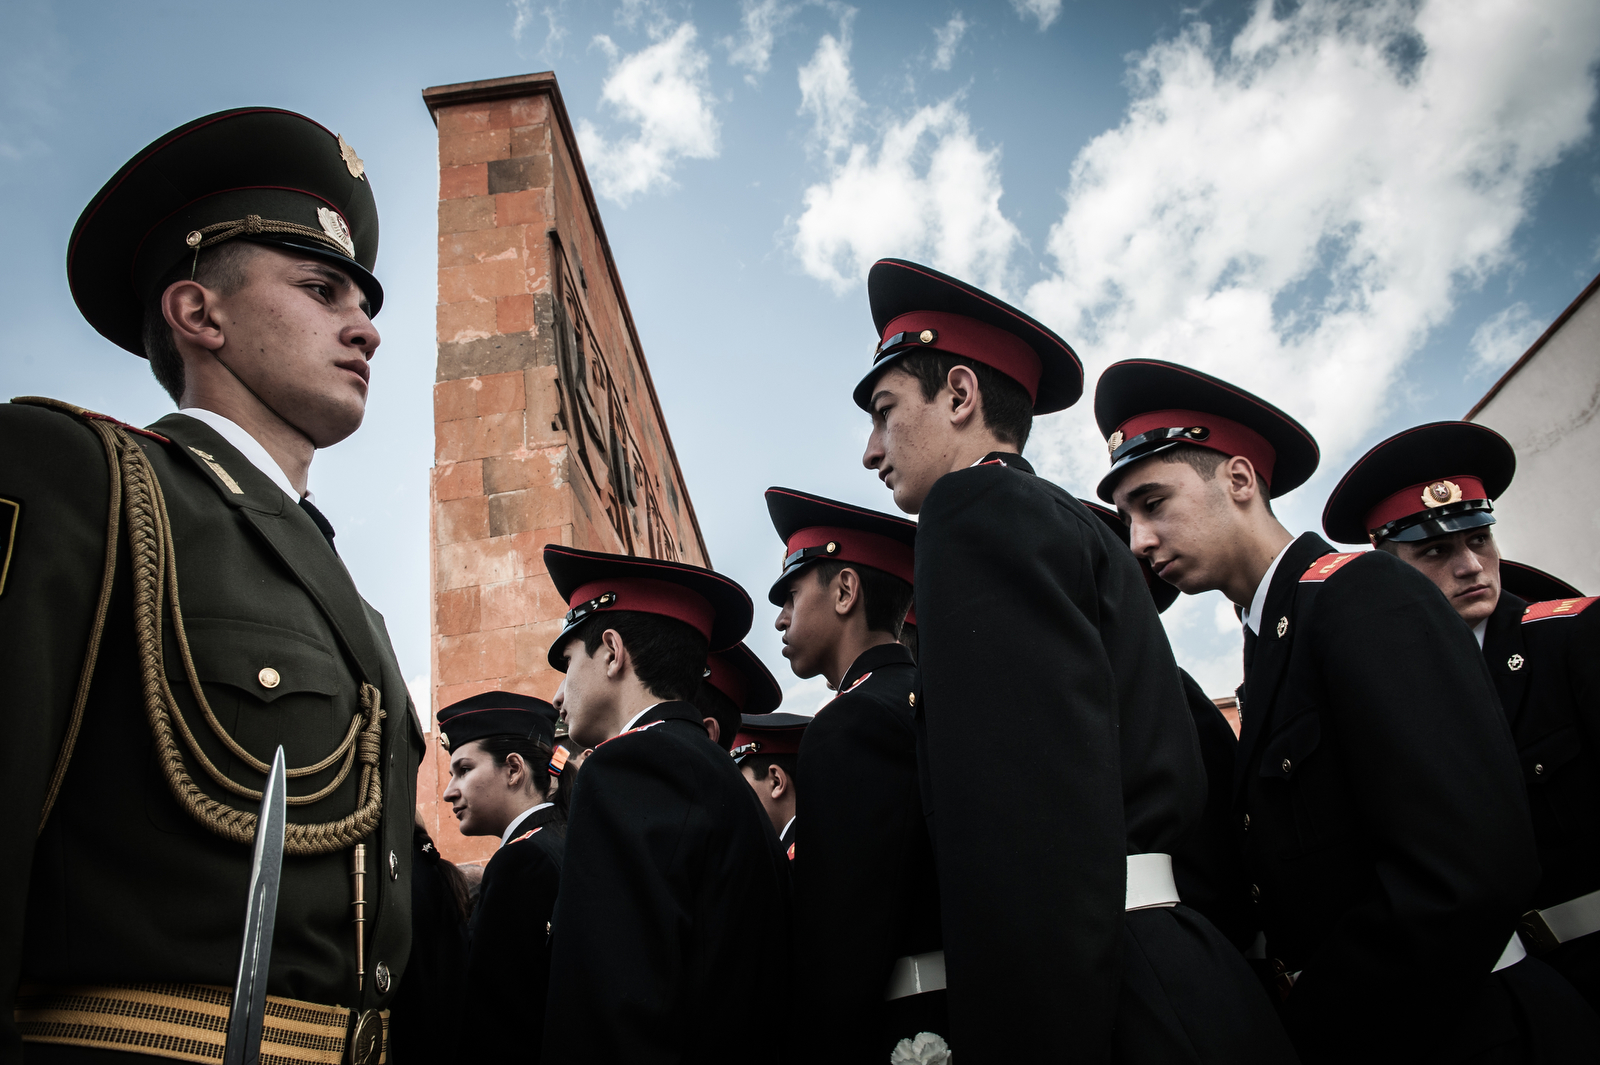 Mattia Vacca - The forgotten war of Nagorno-Karabakh